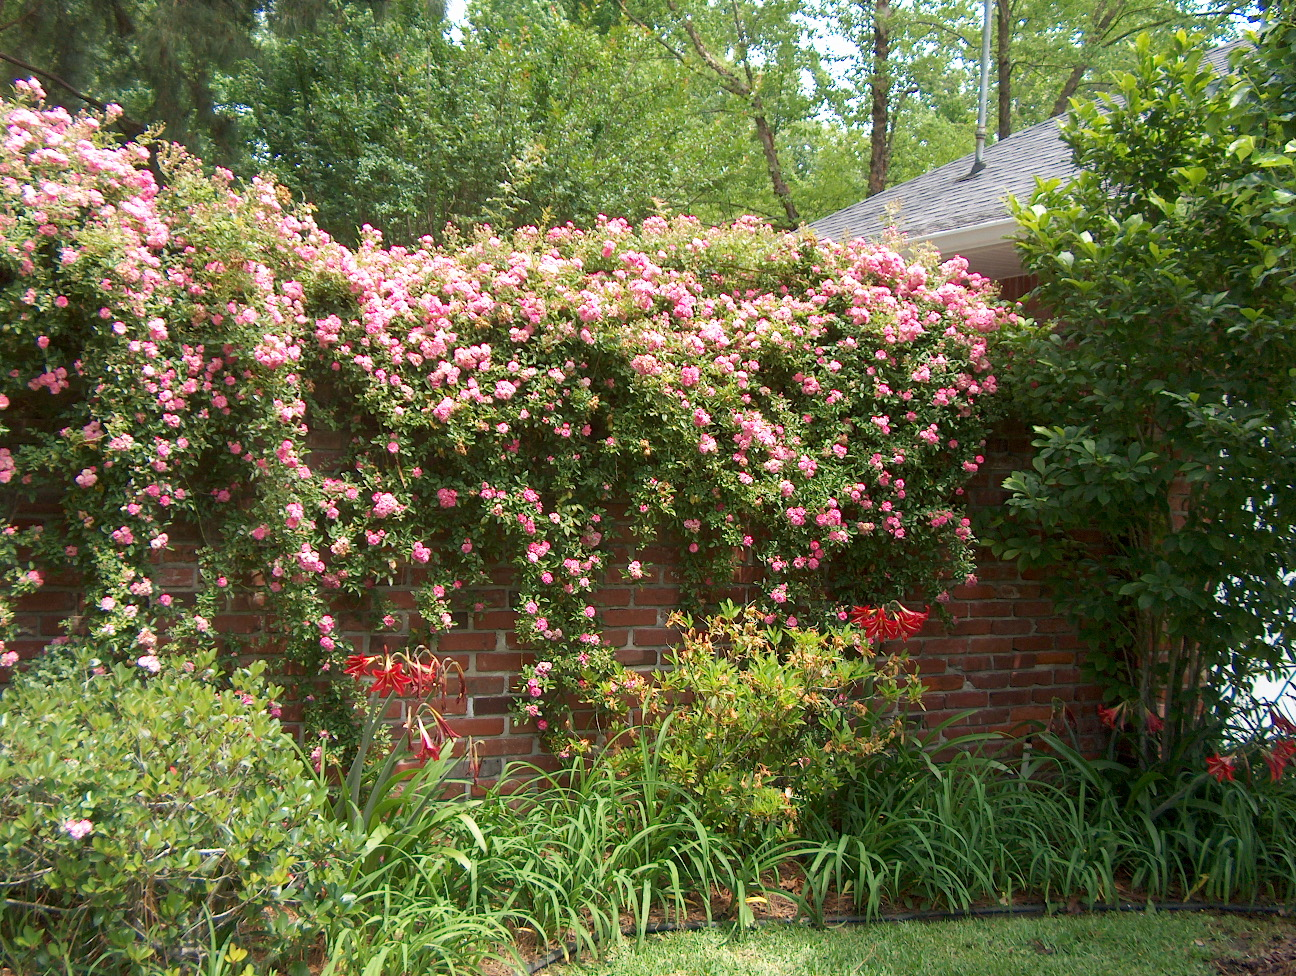 Plant roses in winter for beautiful blooms later